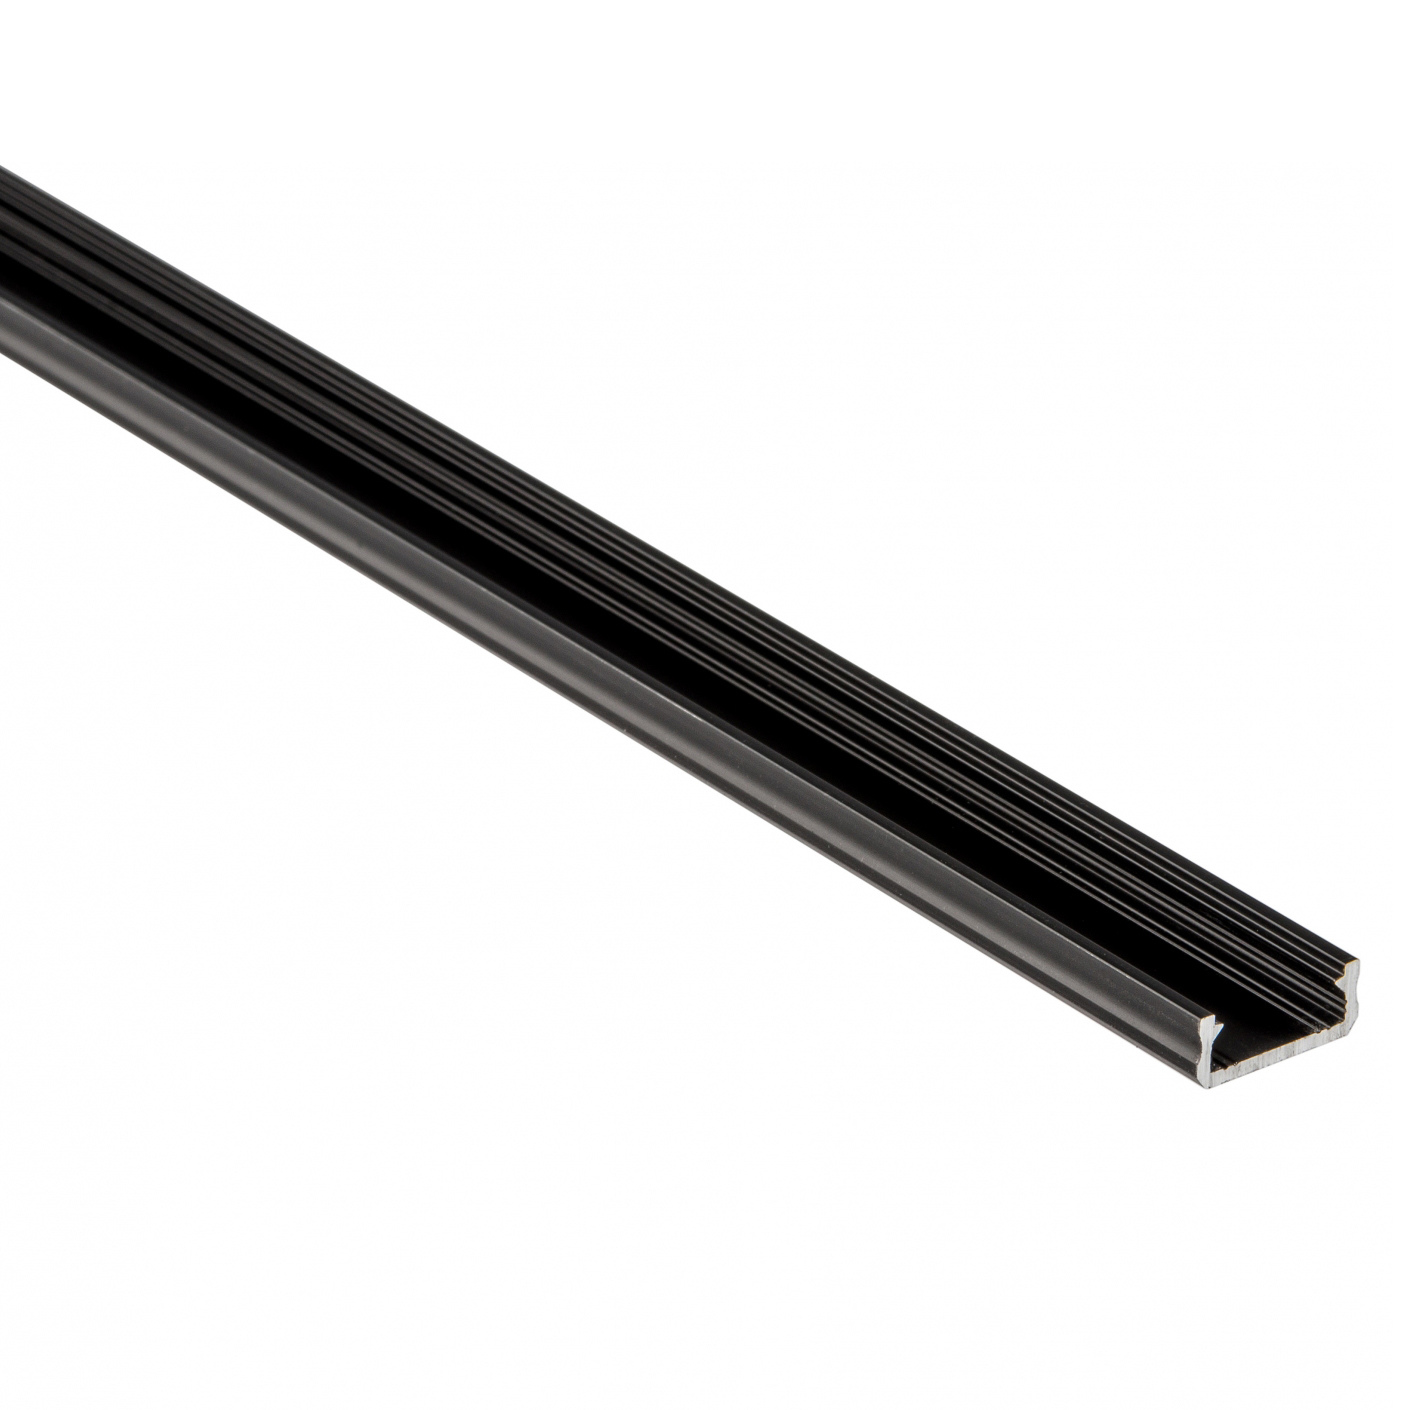 LED-Flat-Profile 1.0m black